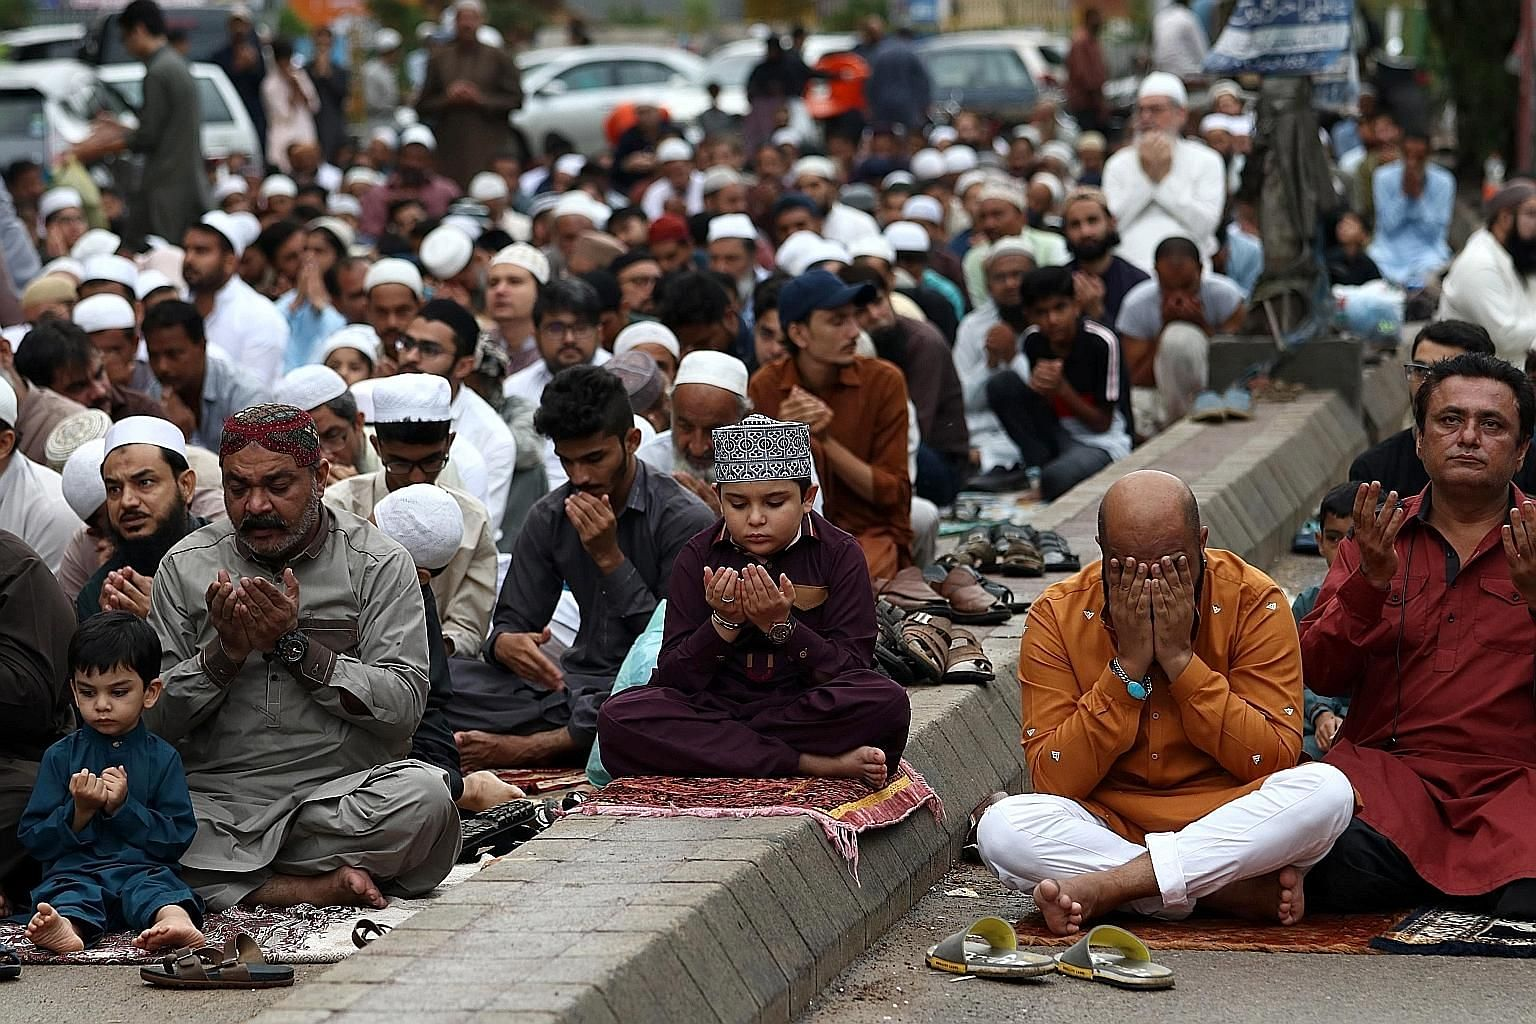 """People praying during Eid al-Adha in Karachi yesterday. Islamabad has called for the festival to be observed in a """"simple manner"""", to express solidarity with Kashmiris living on the Indian side of the divided region. PHOTO: EPA-EFE"""